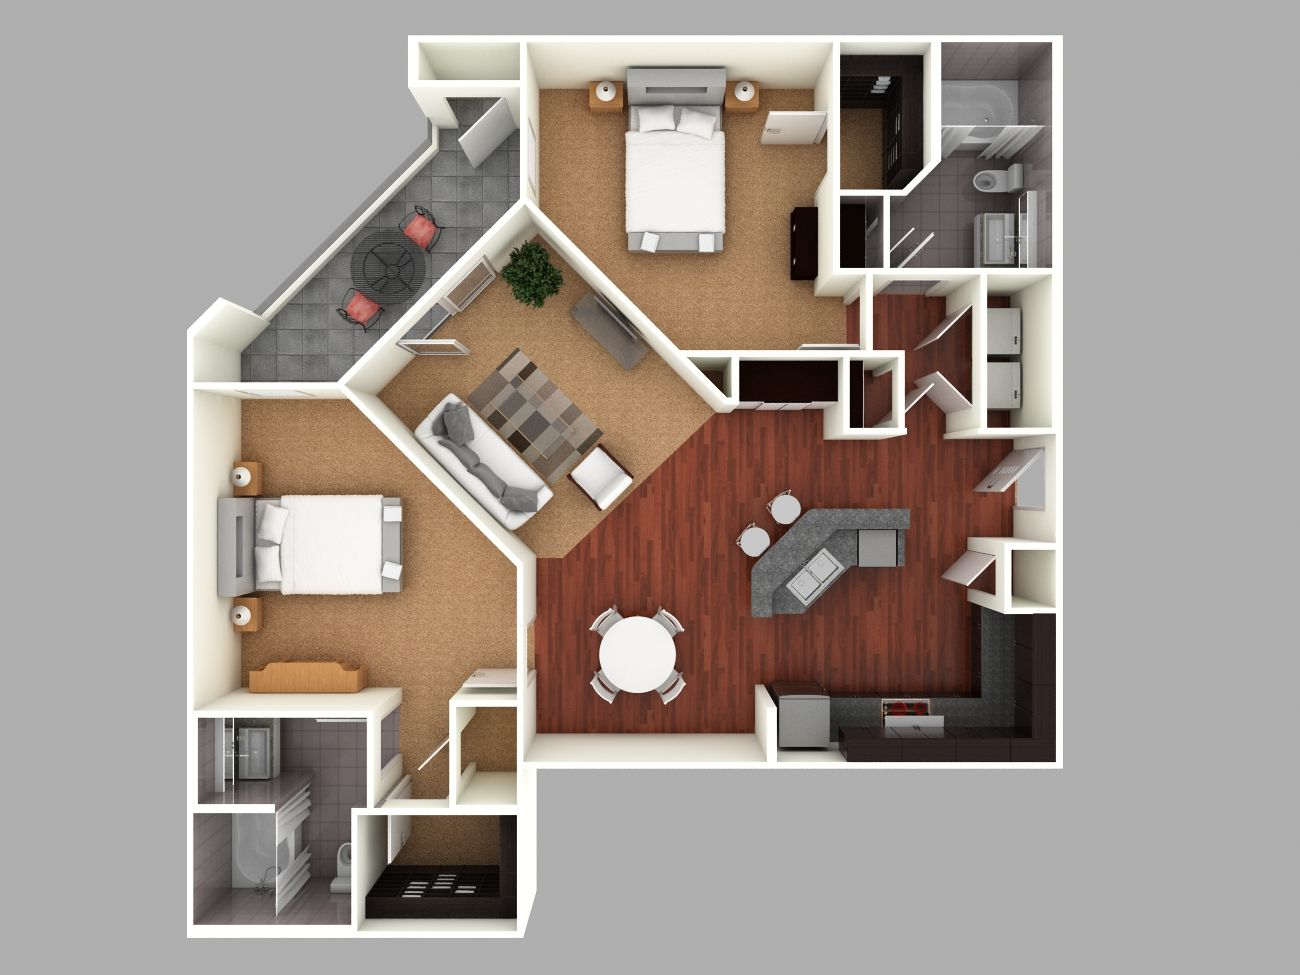 3d colored floor plan architecture colored floor plan for Small two bedroom apartment floor plans